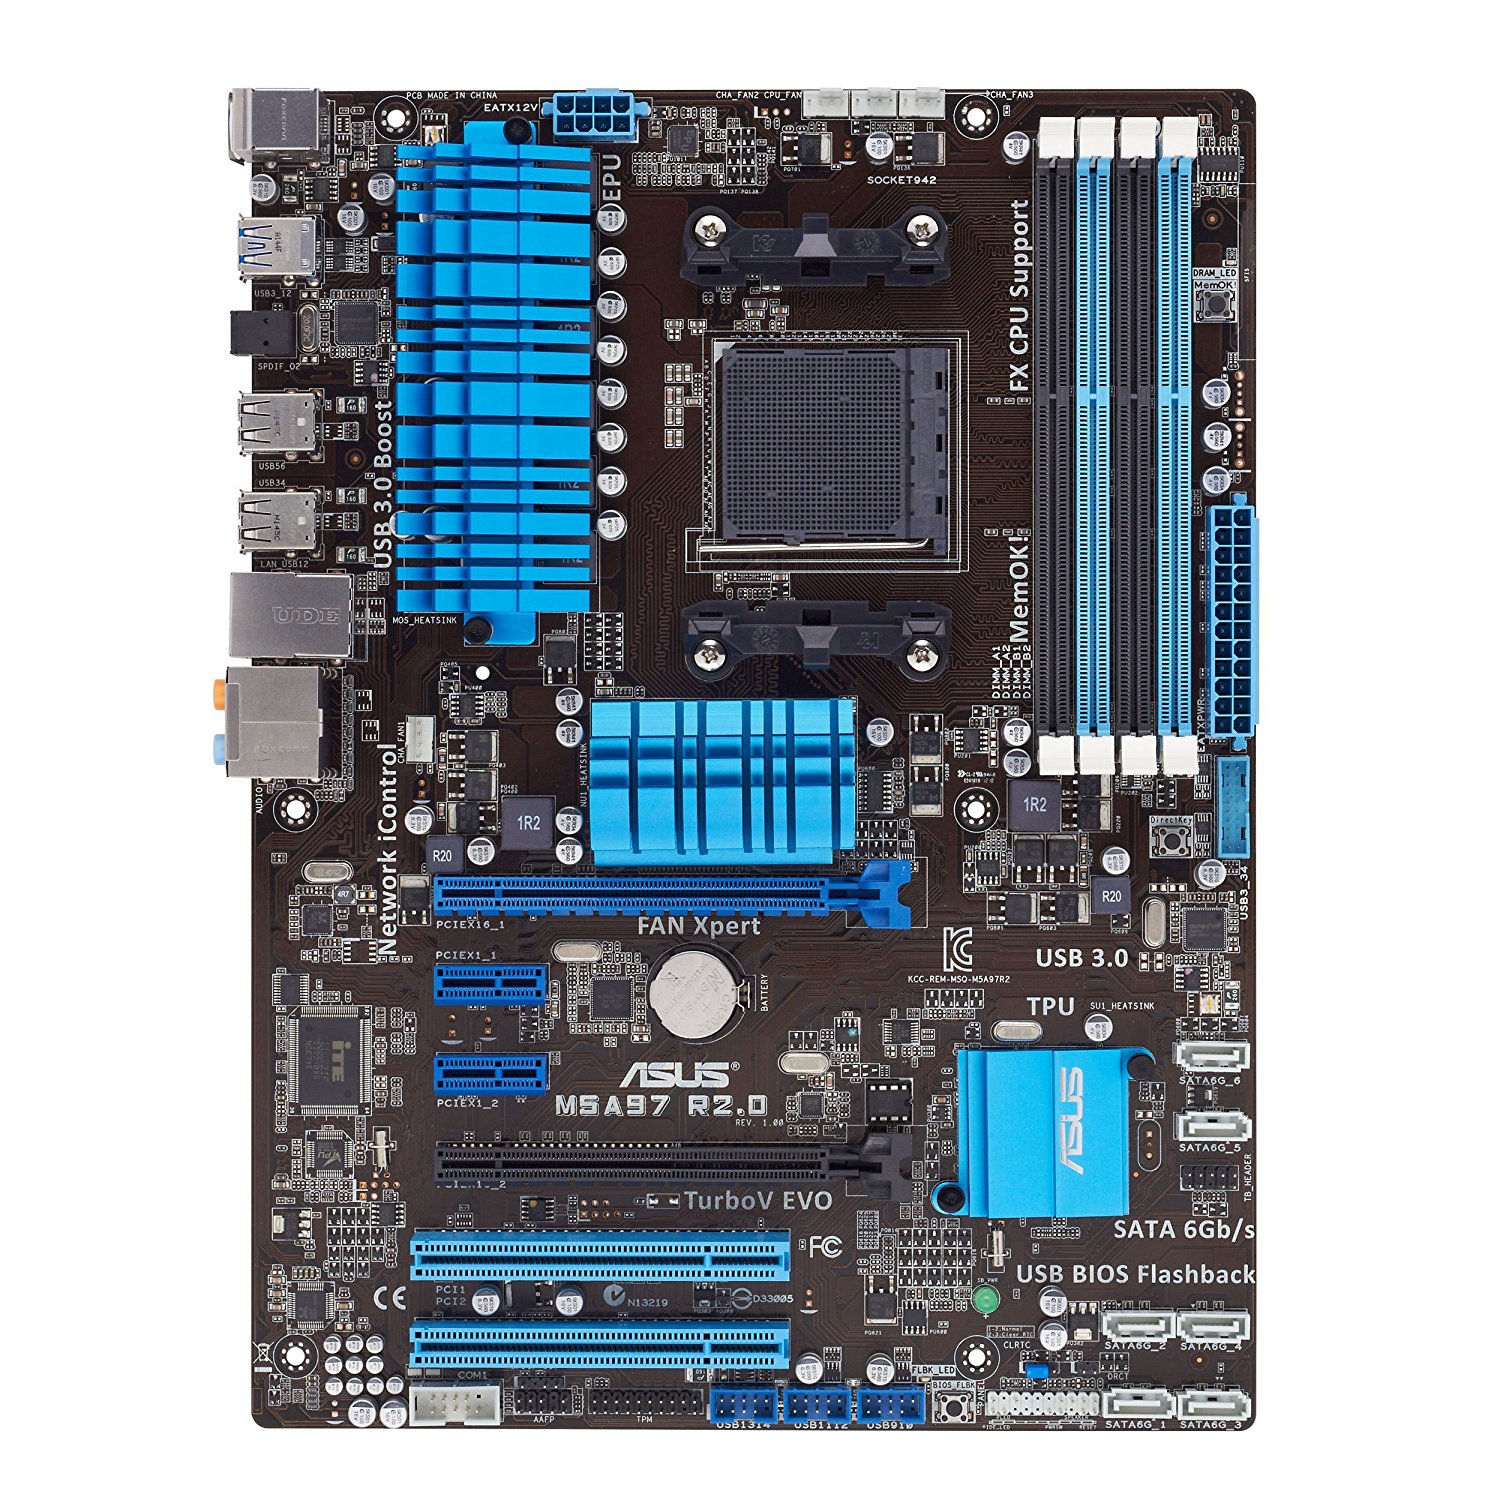 ASUS M5A97 EVO R2.0 PC DIAGNOSTICS DRIVER FOR WINDOWS 7